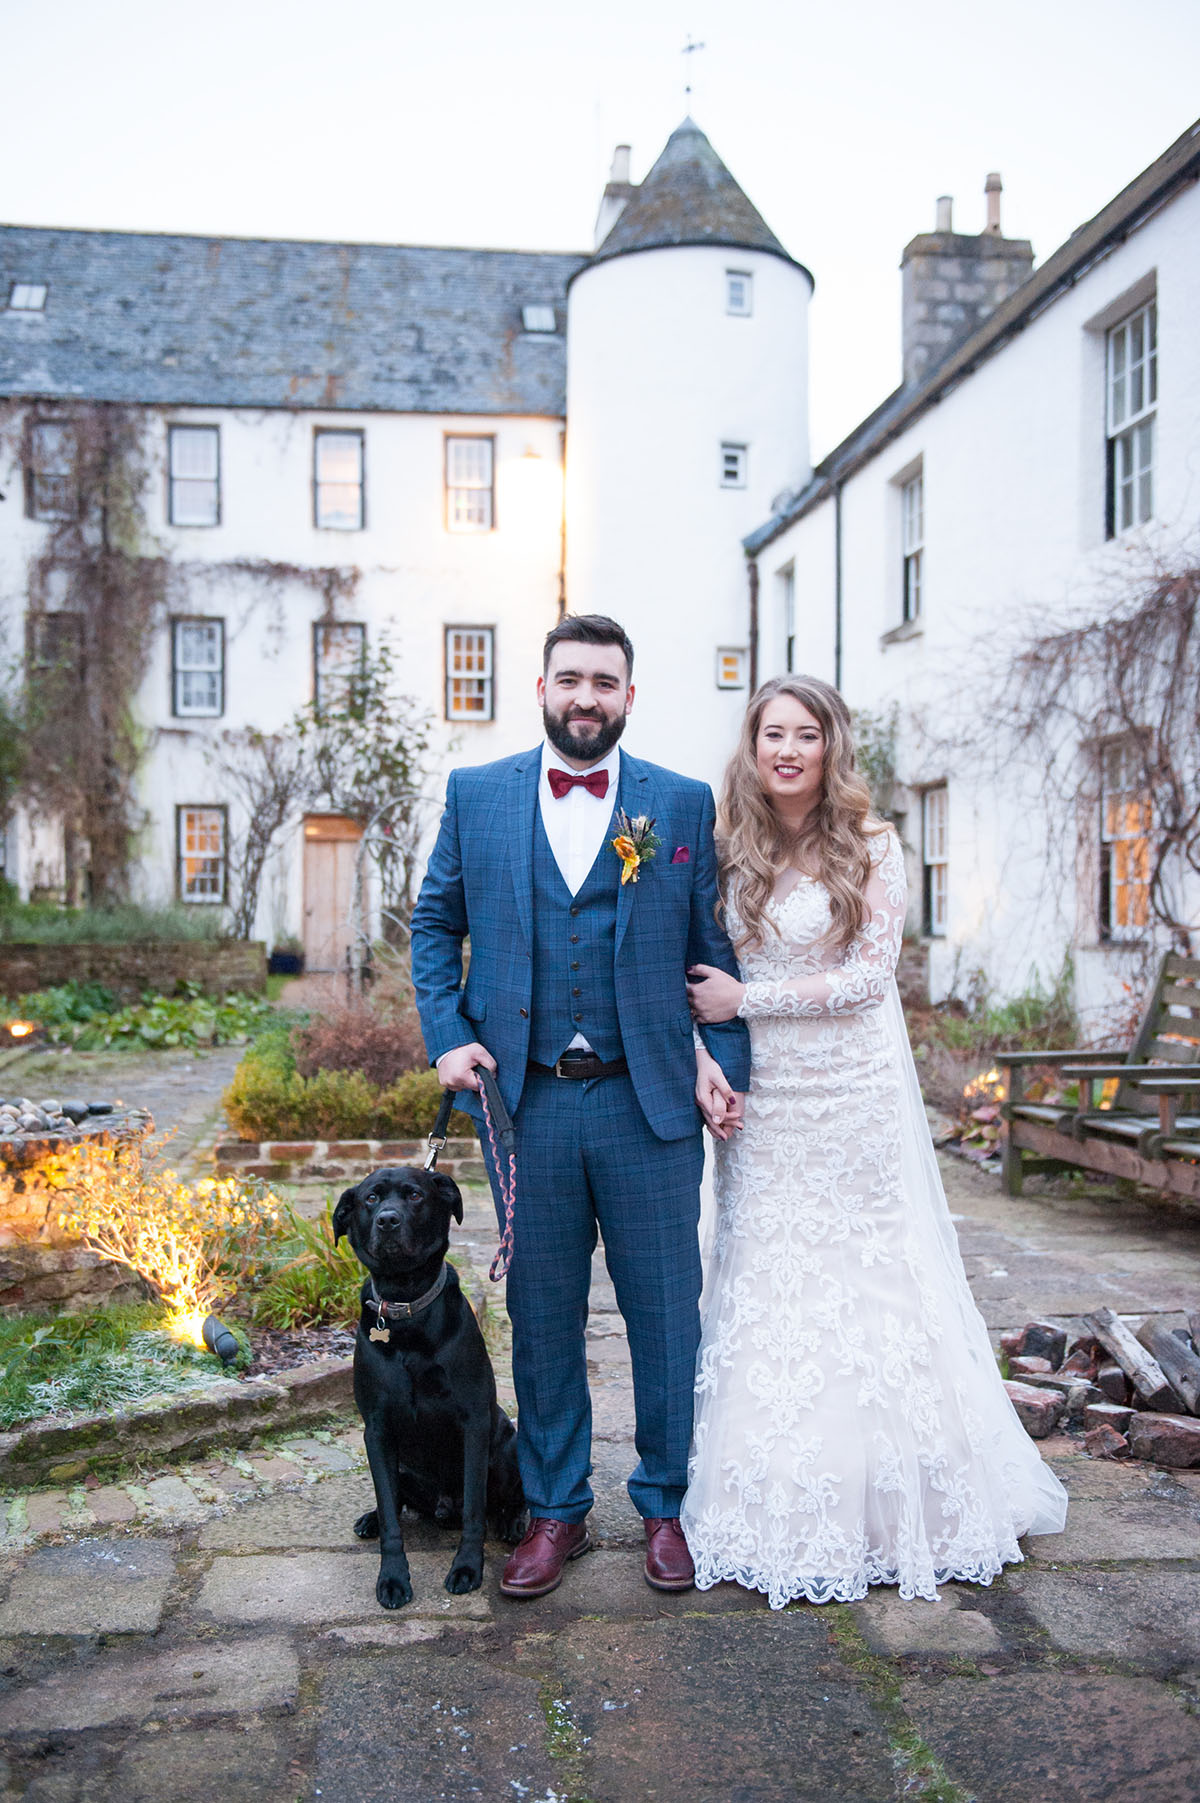 Wedding photography portfolio - bride and groom with a black dog standing in a courtyard in front of a white building